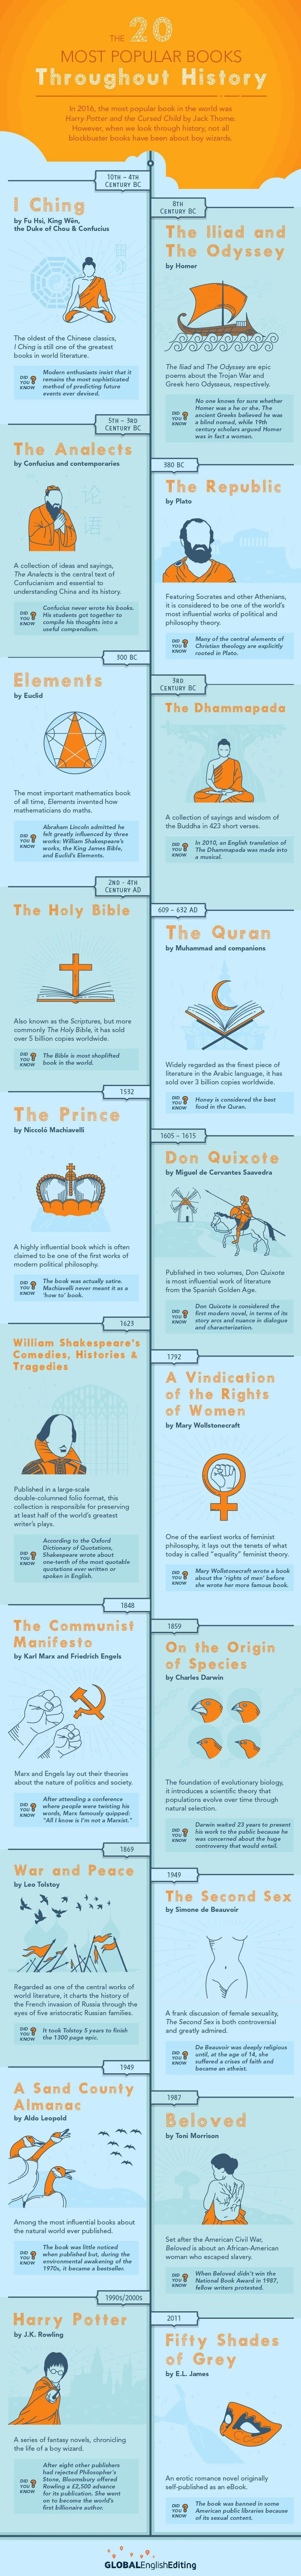 Infographic: The 20 Most Popular Books Throughout History